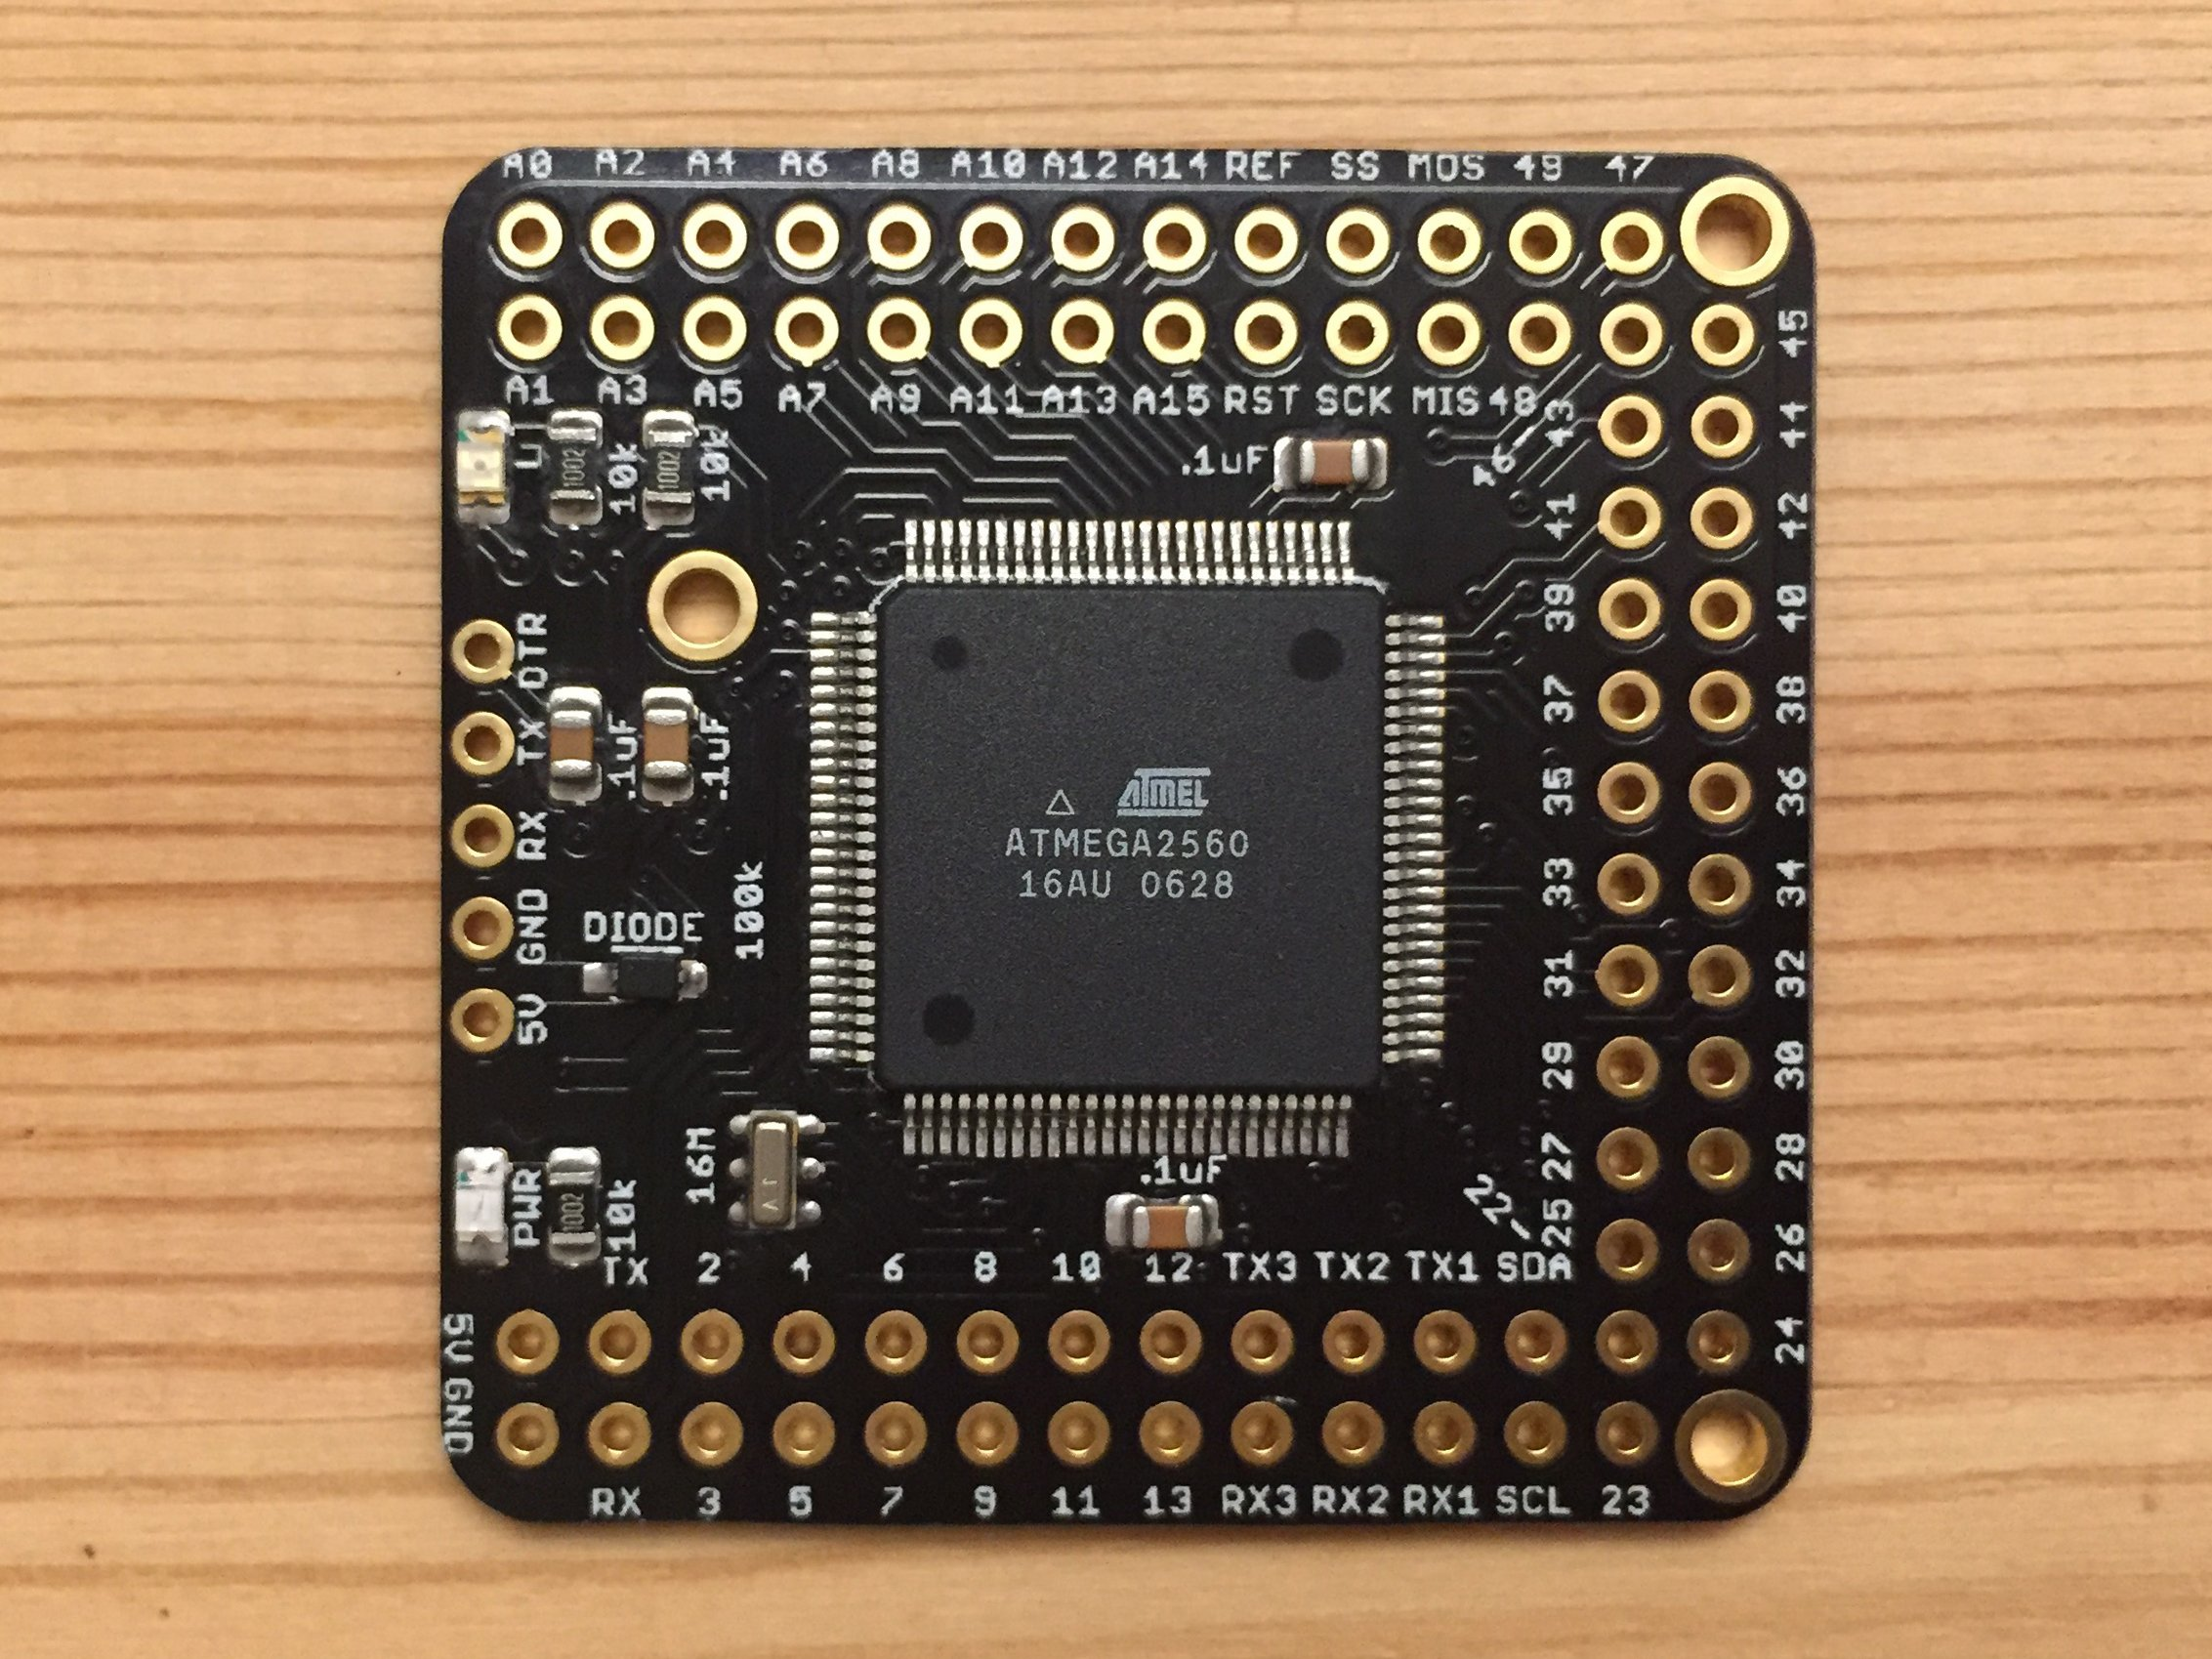 Naked mega an arduino compatible board from